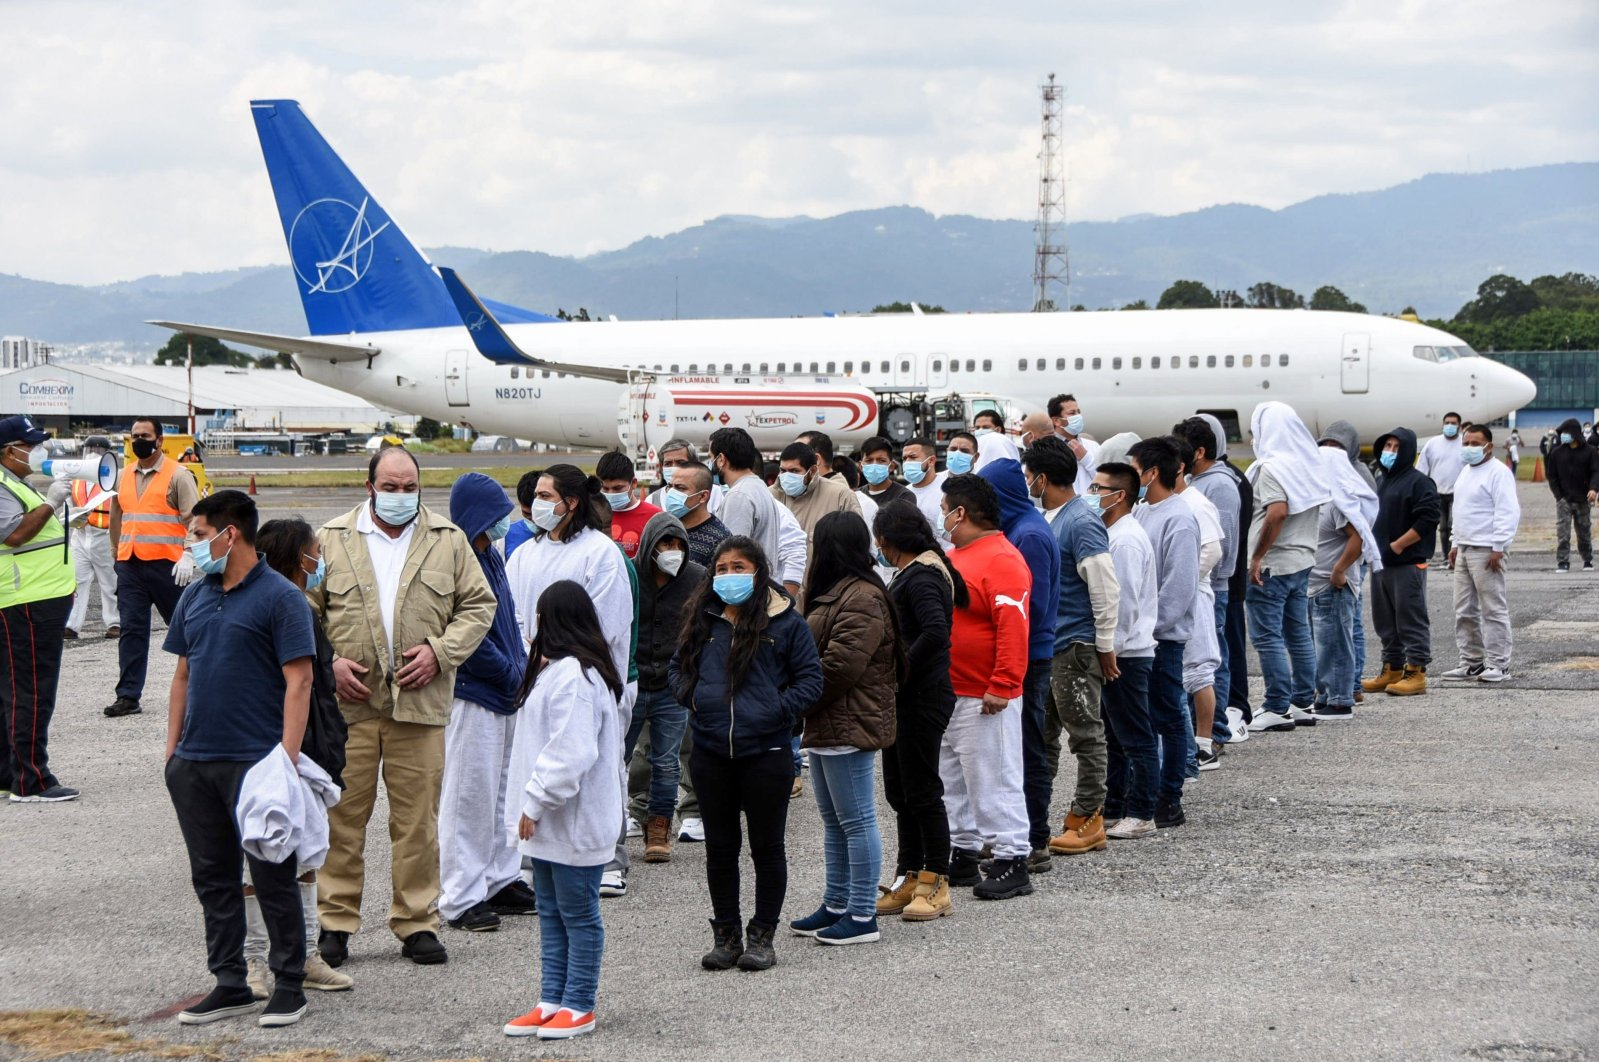 Guatemalan migrants deported from the United States, queue upon their arrival at the Air Force Base in Guatemala City on January 6, 2021. (AFP Photo)